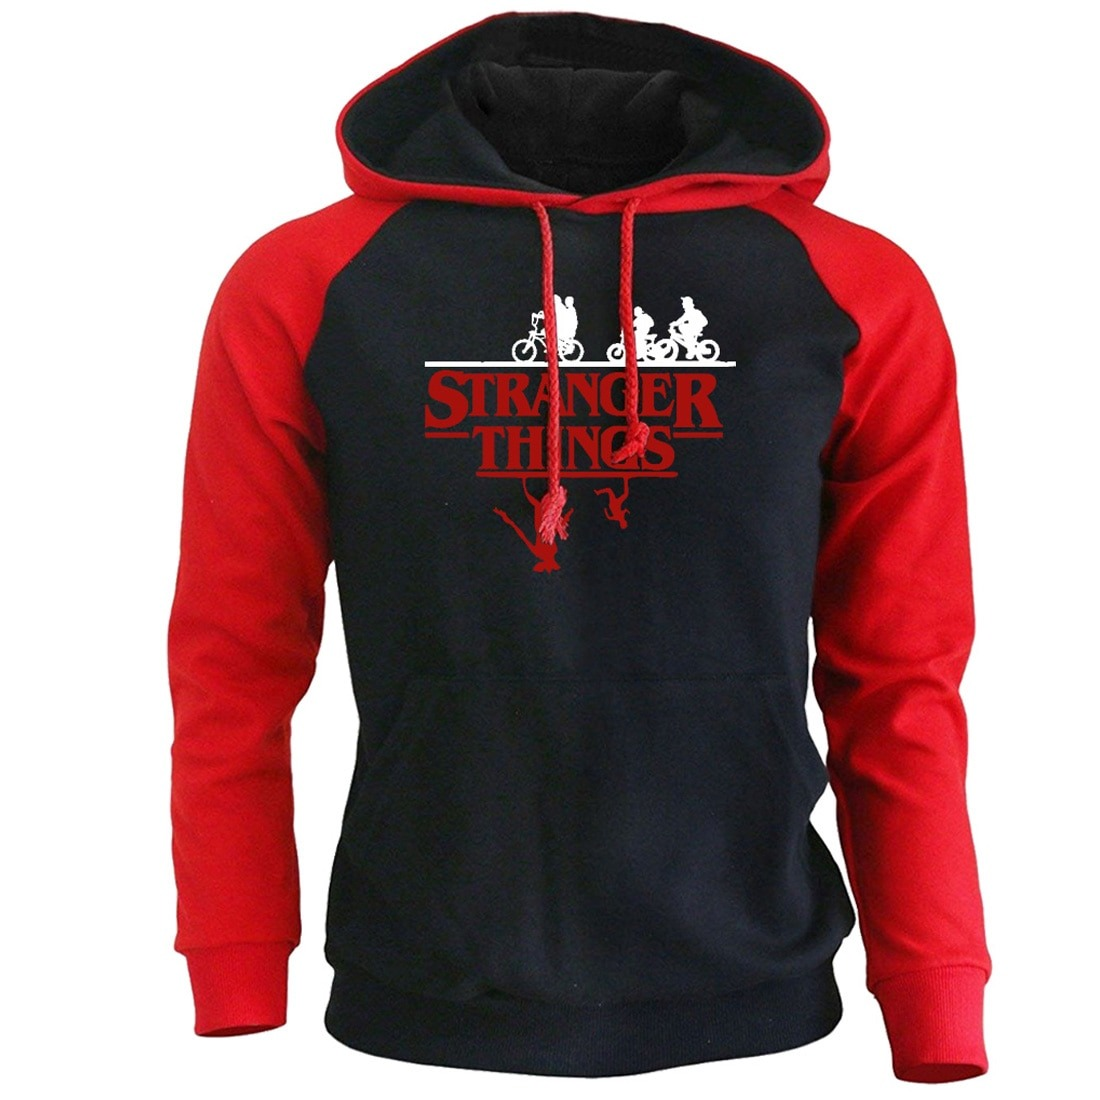 Sudadera con capucha Stranger Things Casual 2020 1